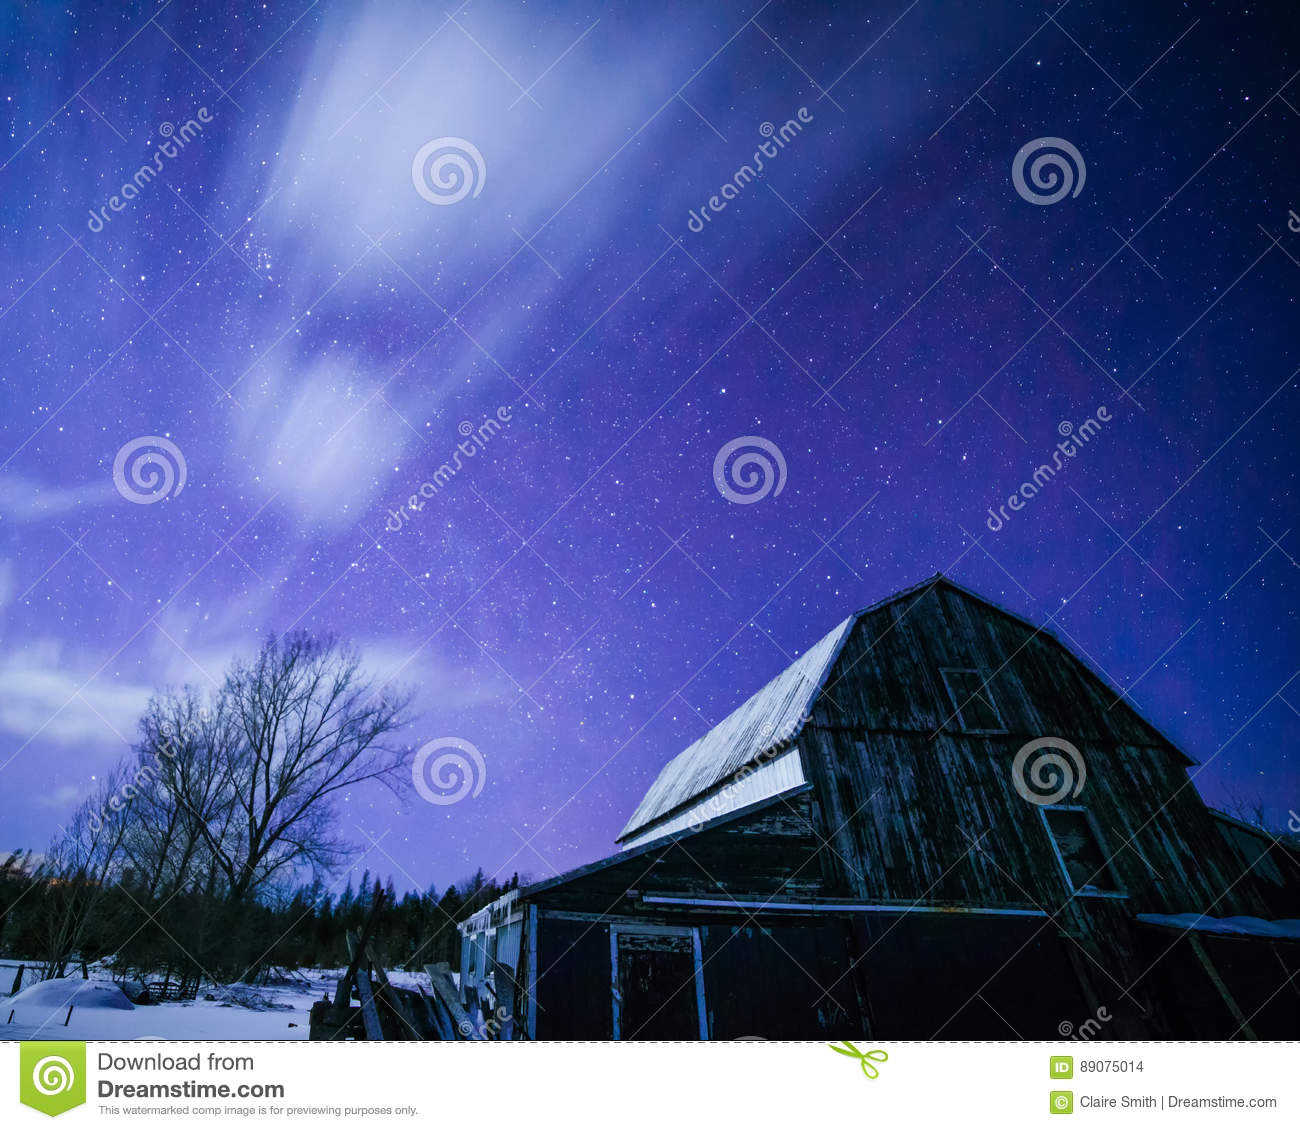 Moonlit barn with stars and clouds in winter